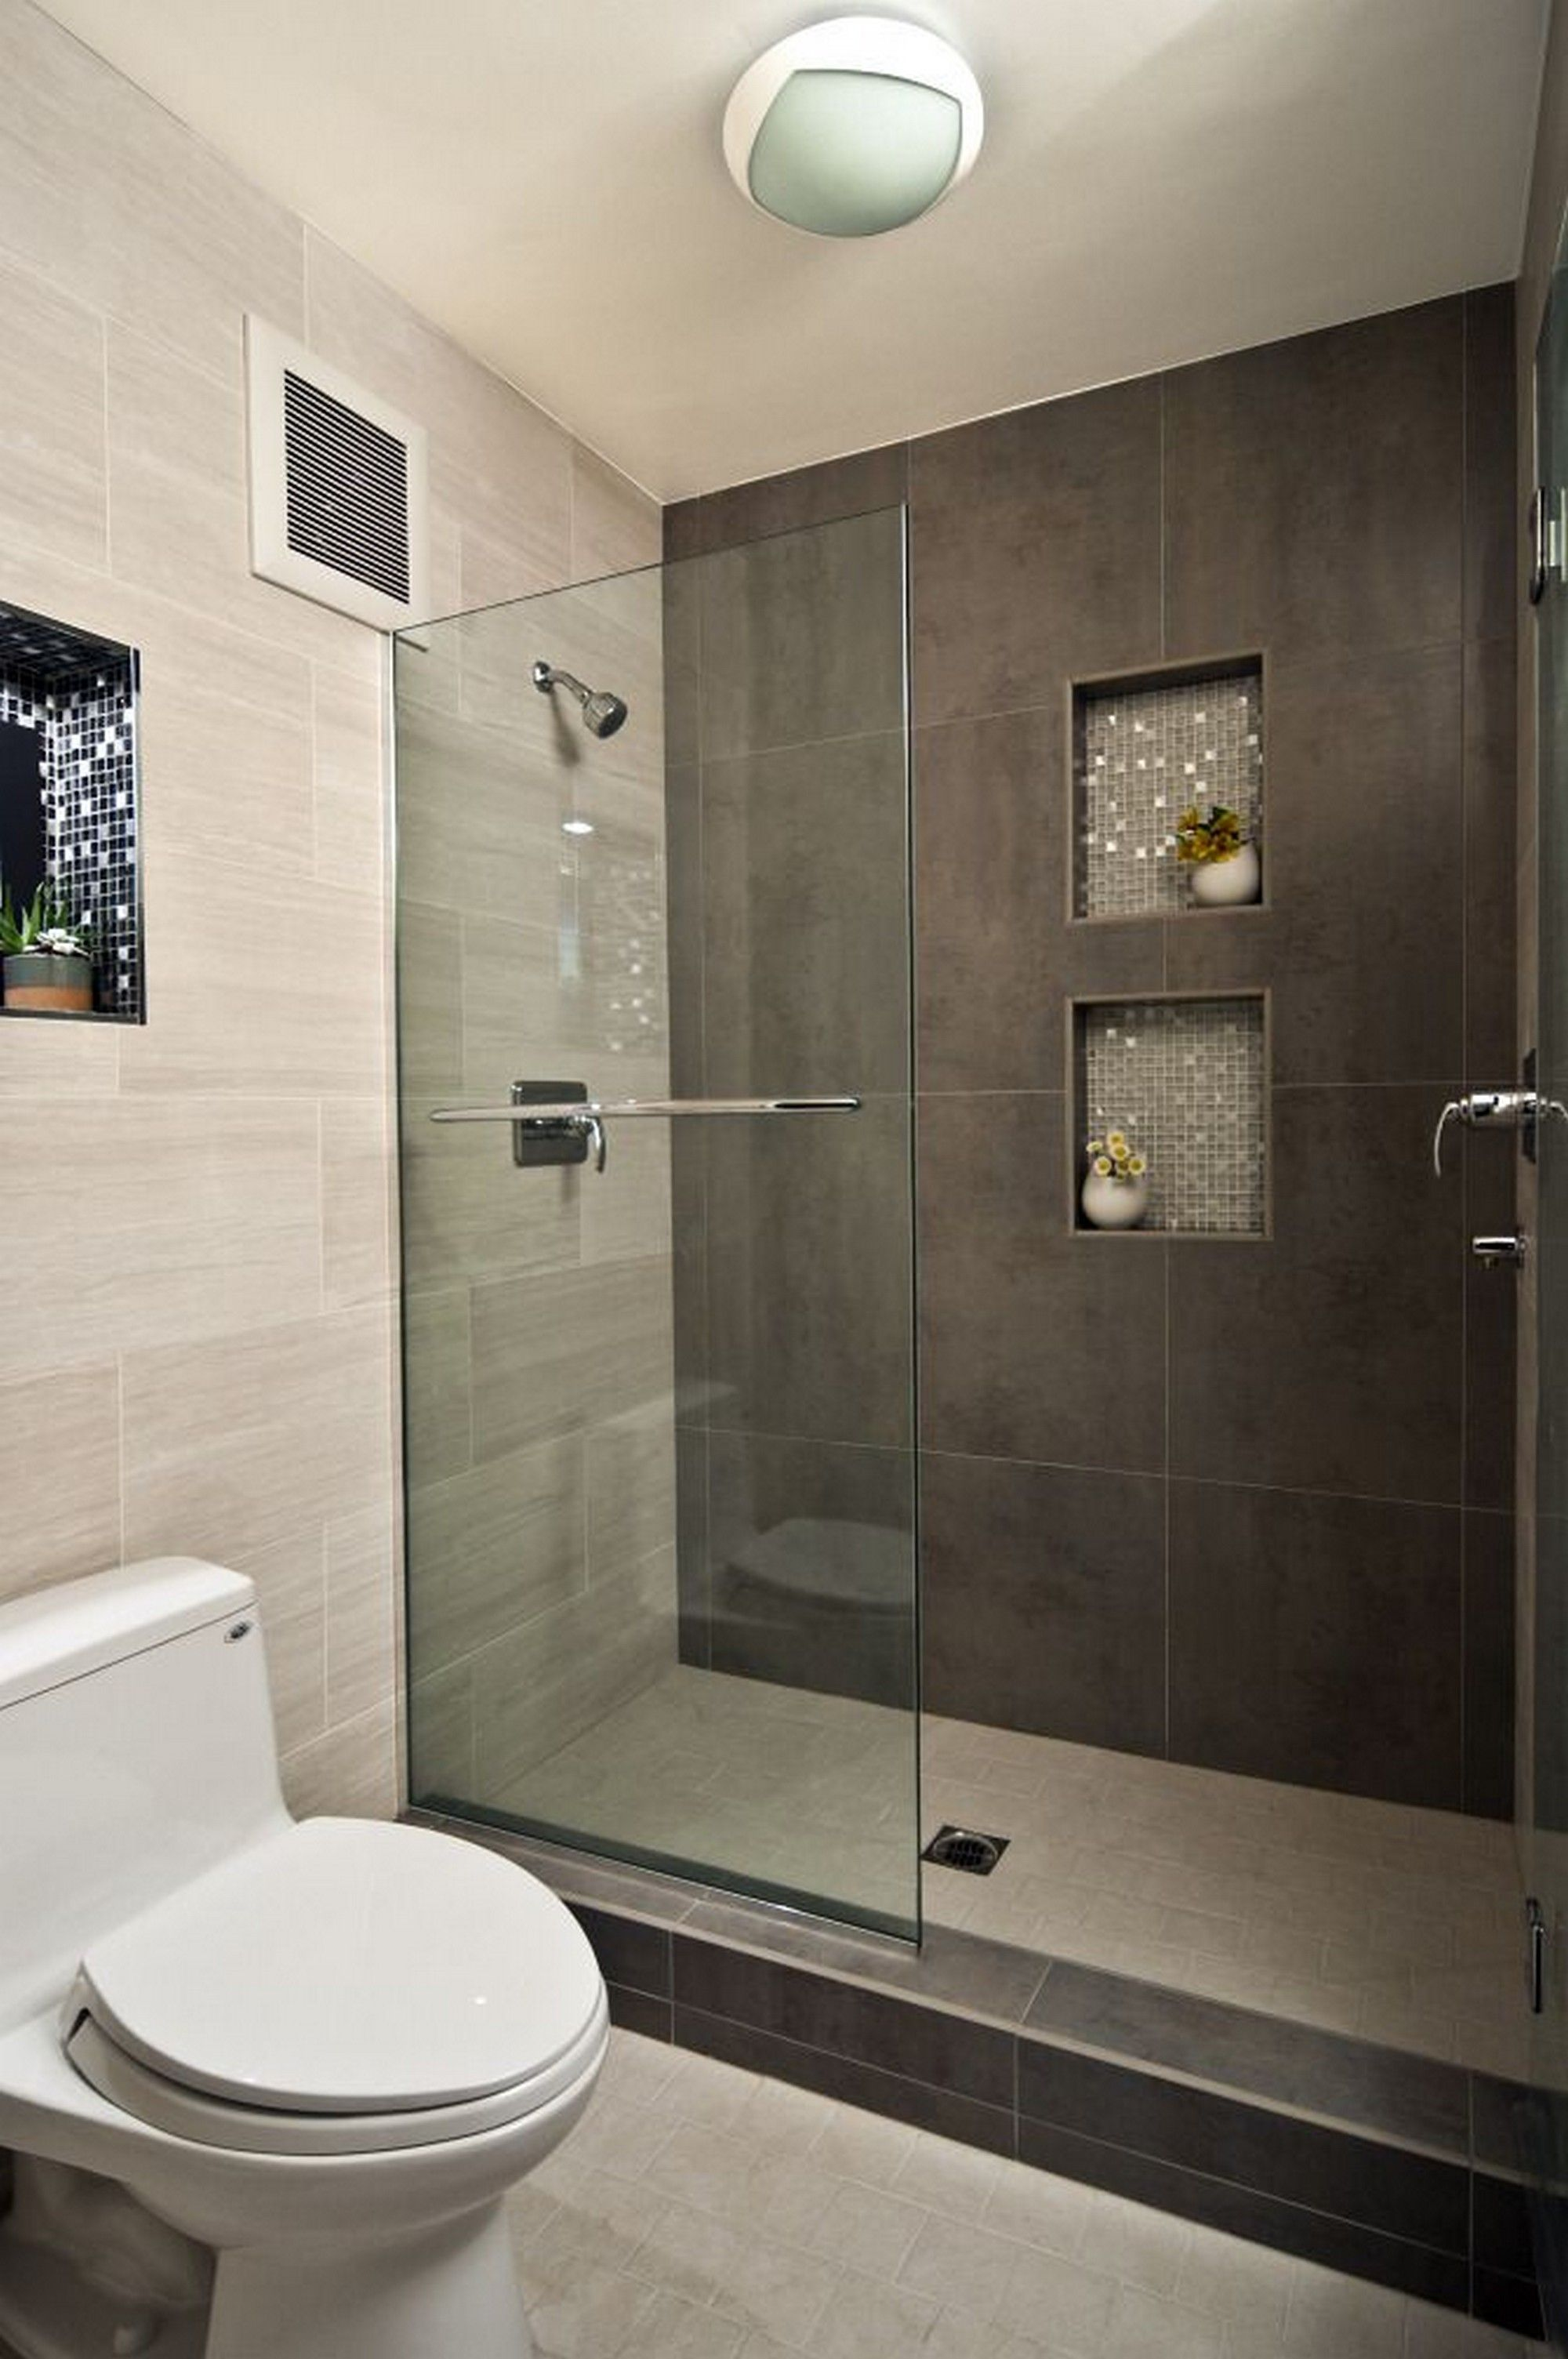 Small Bathroom Design This Site Of Modern Bathroom Design Ideas With Walk In Shower Small